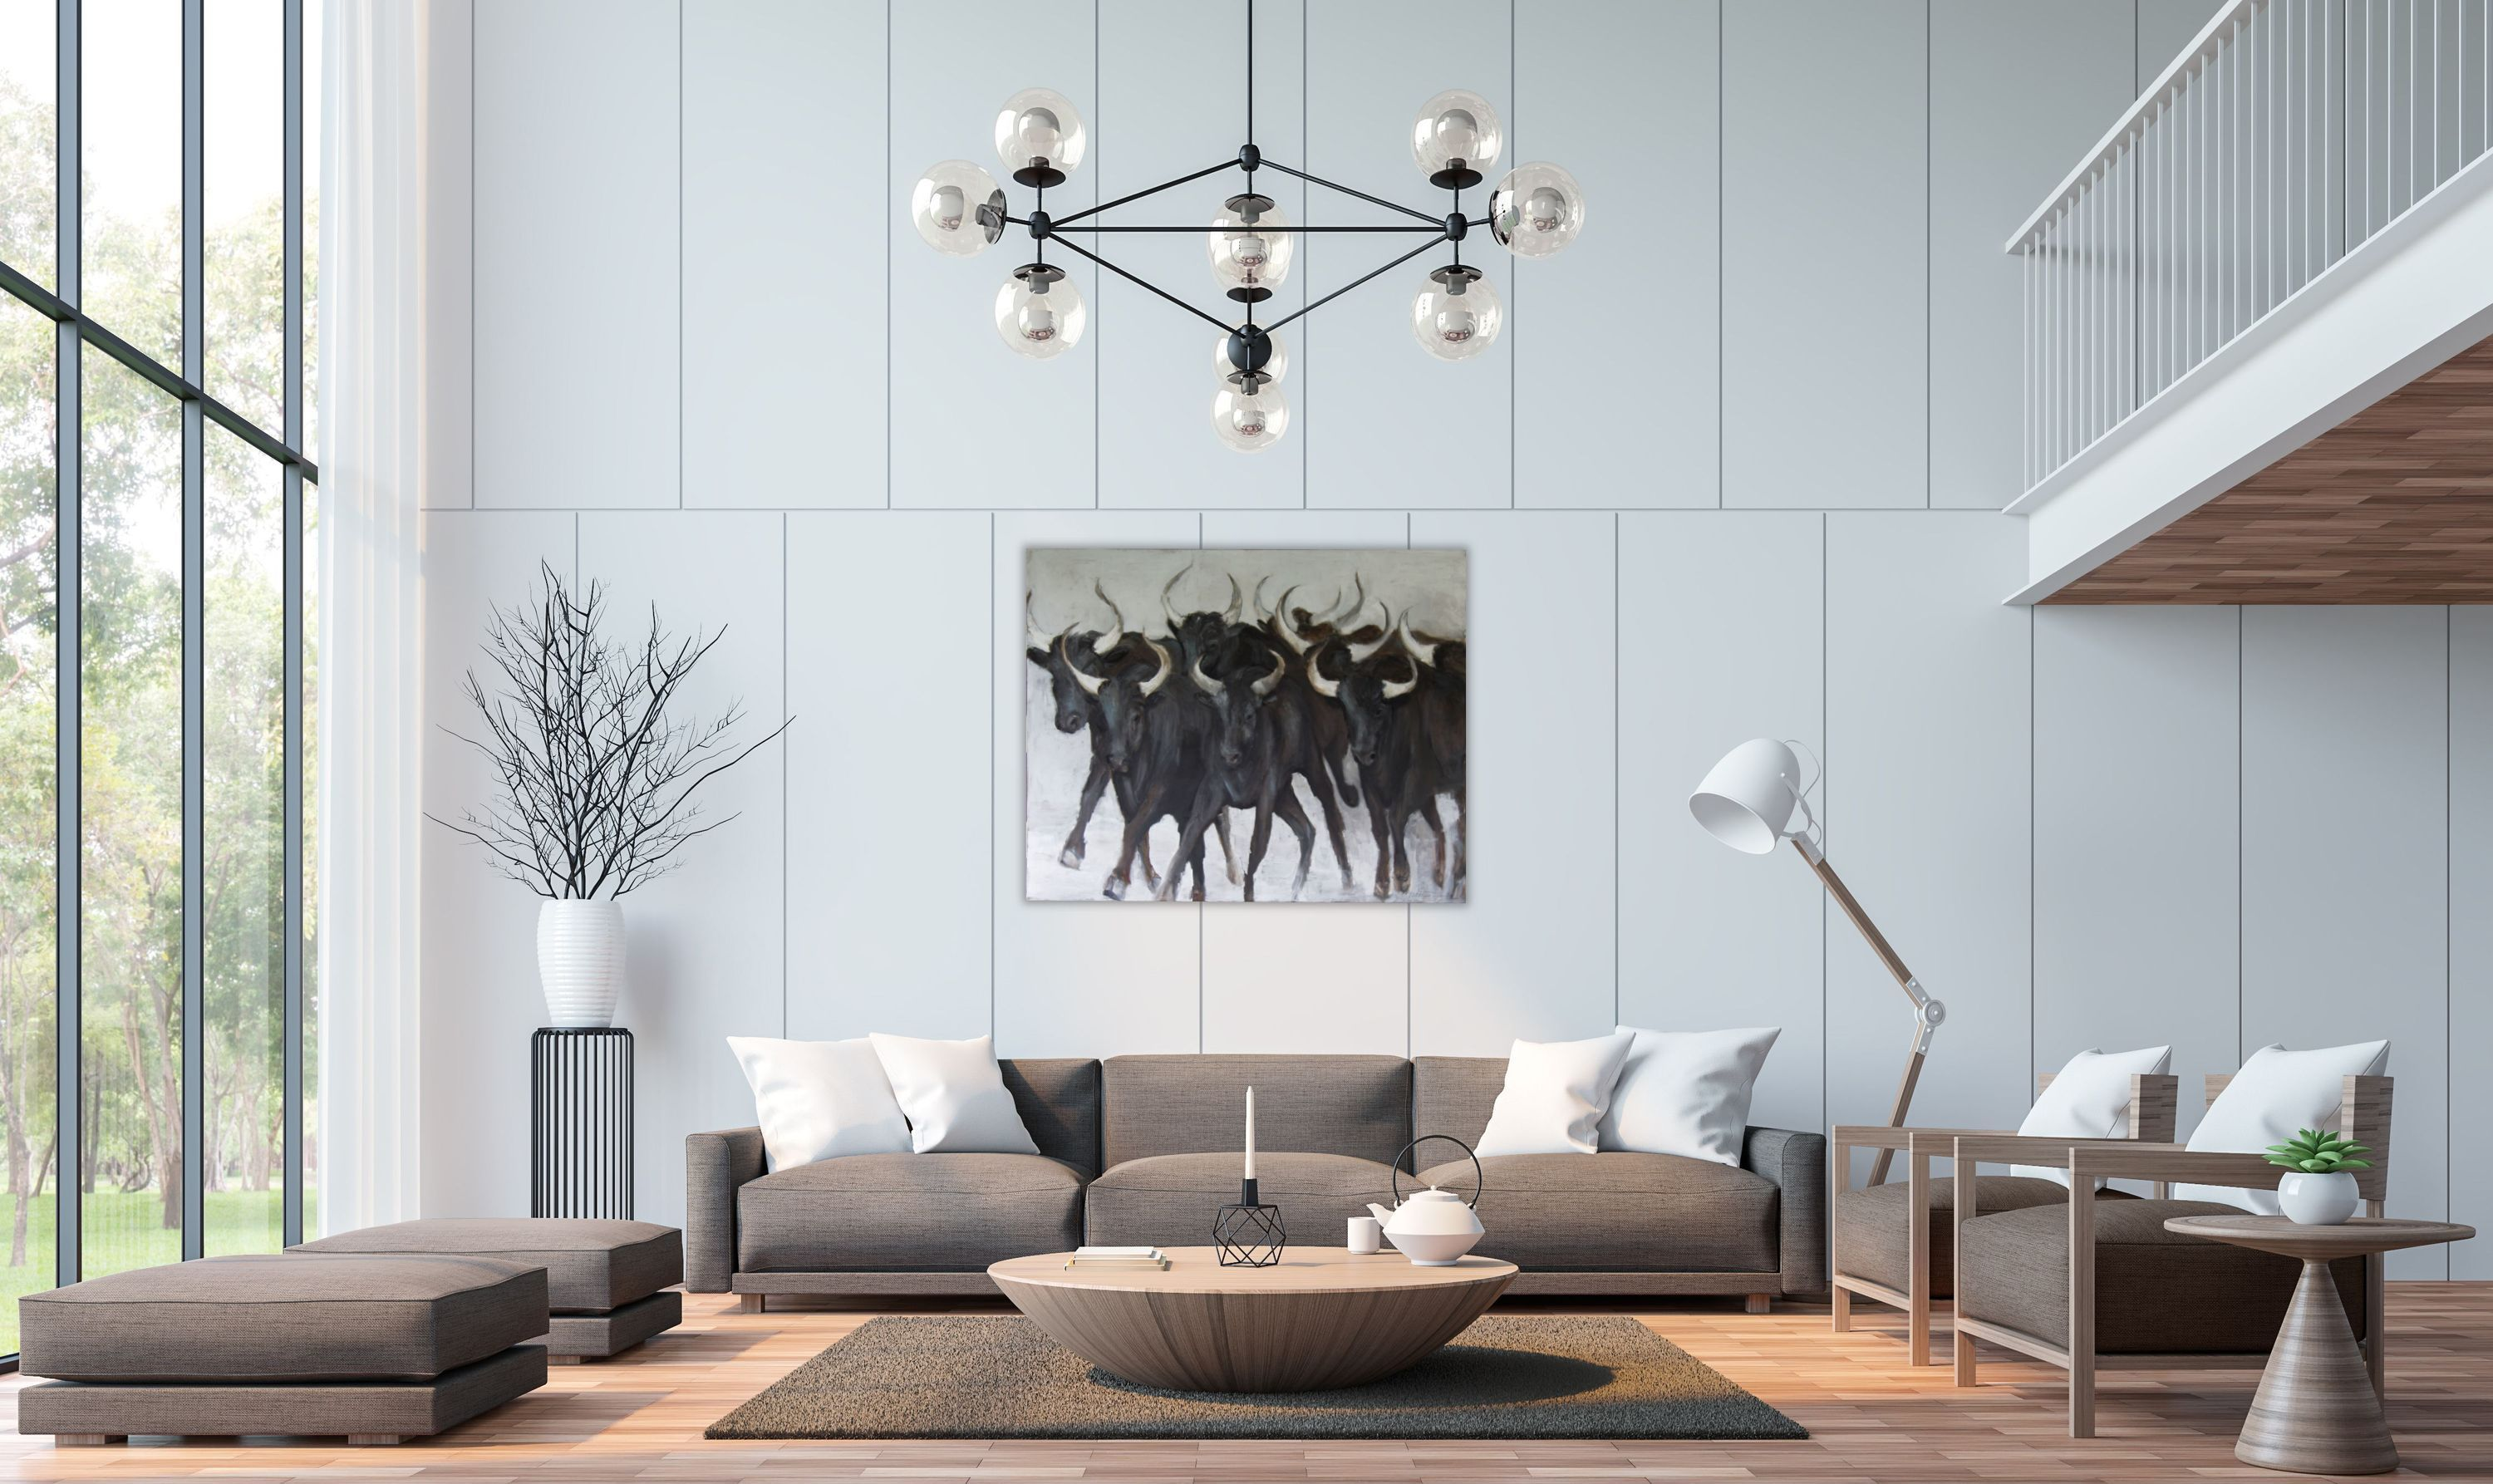 Energetic herd of bulls from the Camargue region of France. A showpiece for any wall in your home or office.